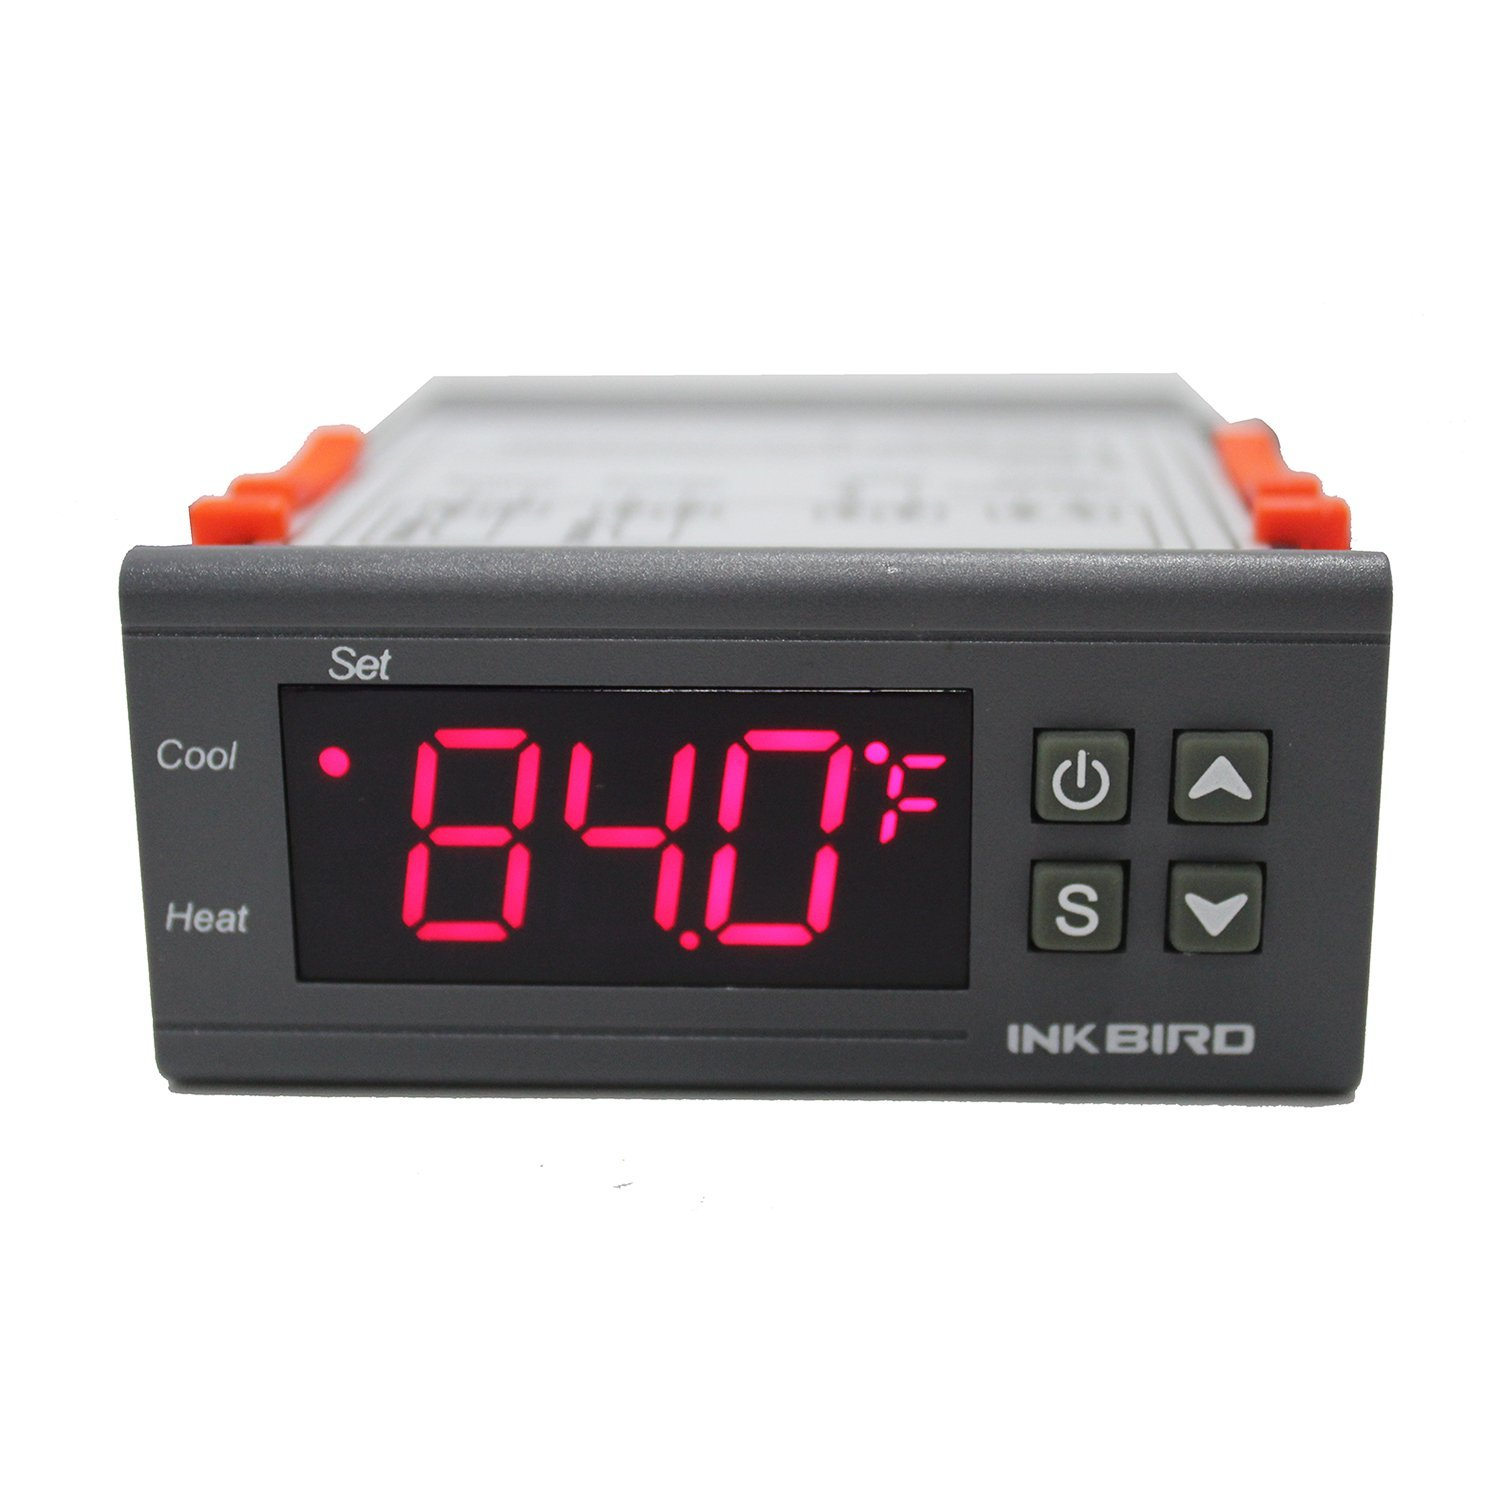 12 Volt Inkbird ITC-1000 Dual Stage Digital Temperature Controller Fahrenheit & Celsius Thermostat with Sensor for 3D Printer,Freezer,Fridge,Hatching ect.